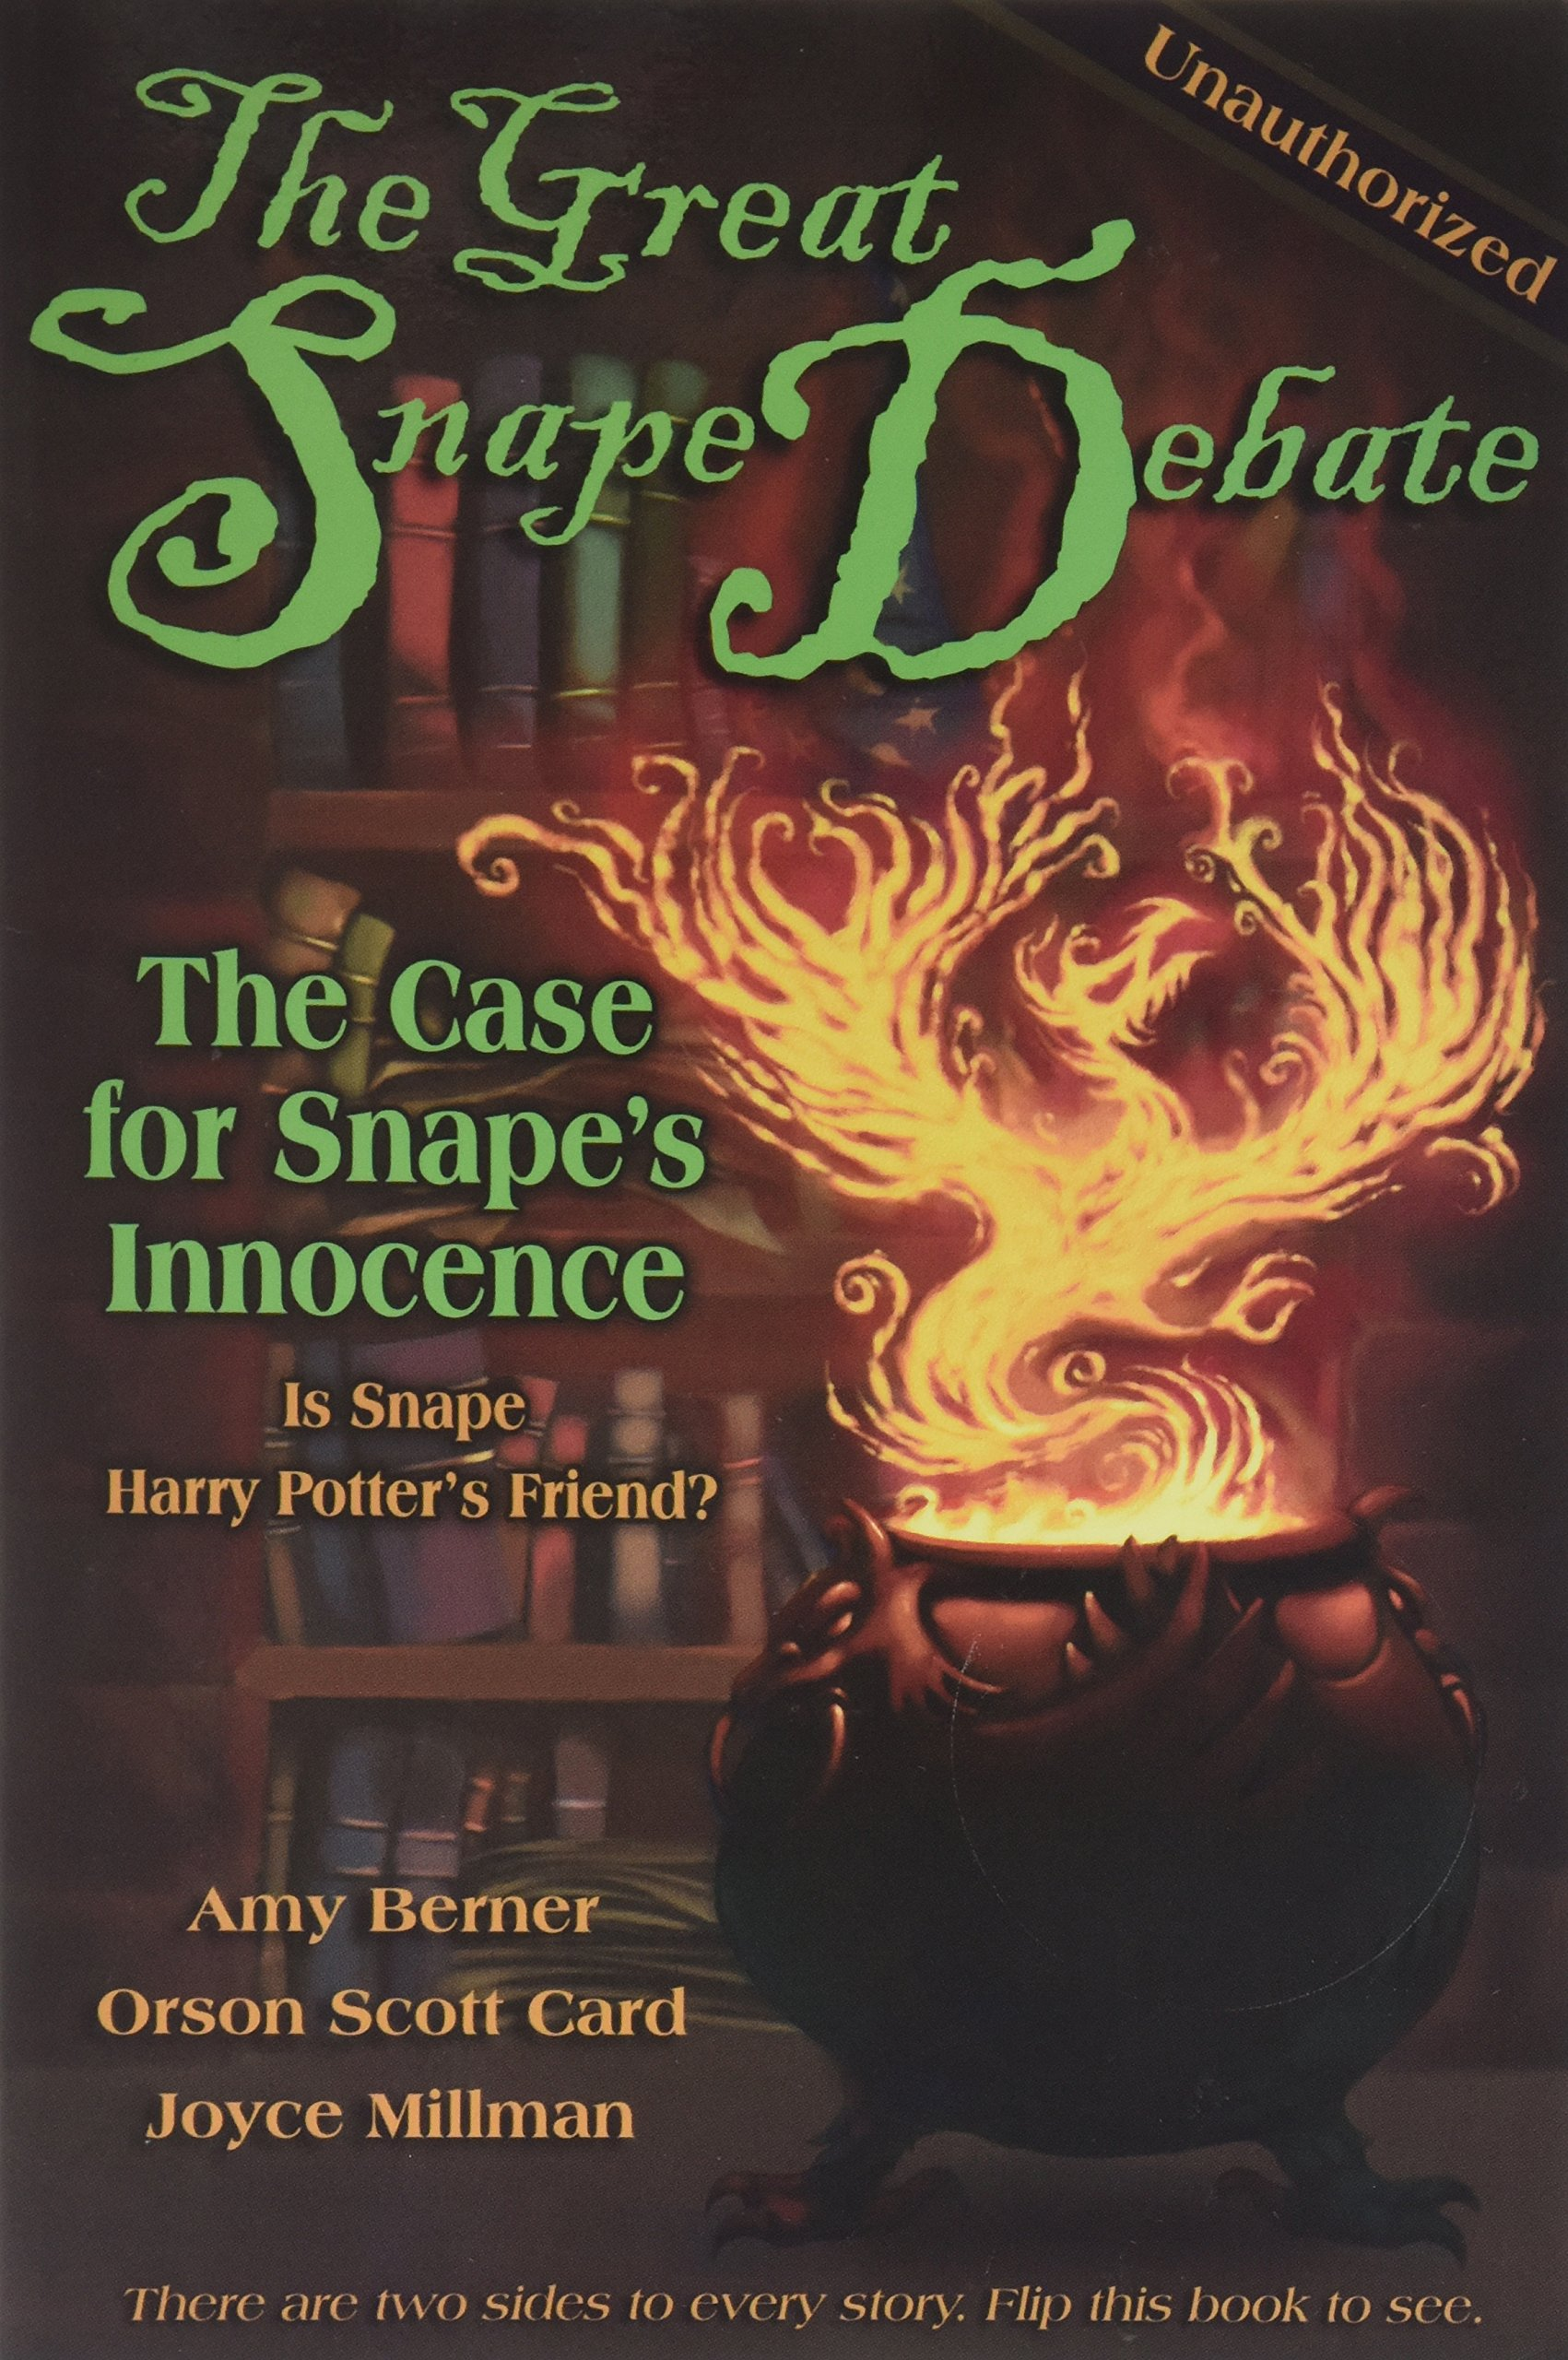 Download The Great Snape Debate : The Case for Snape's Guilt / The Case of the Snape's Innocence pdf